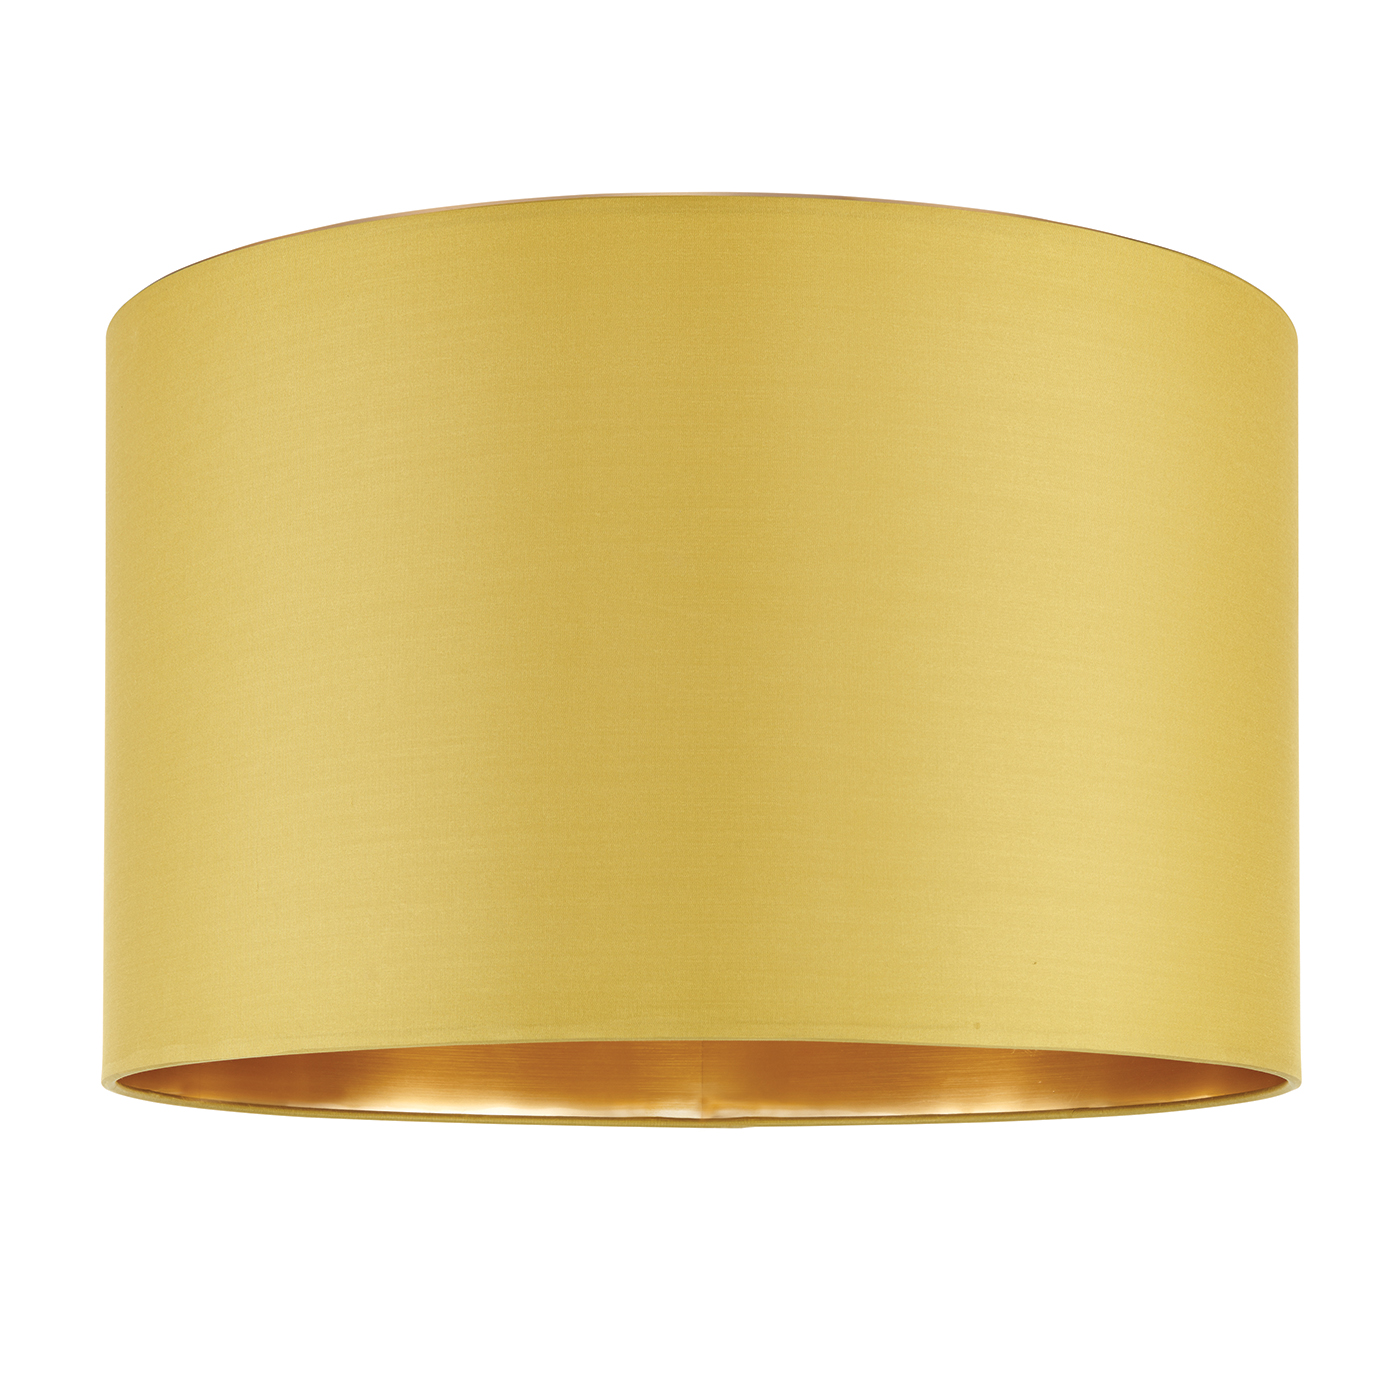 Endon Boutique lampshade 16 inch Chartreuse silk brushed gold 250mm H x 400mm D